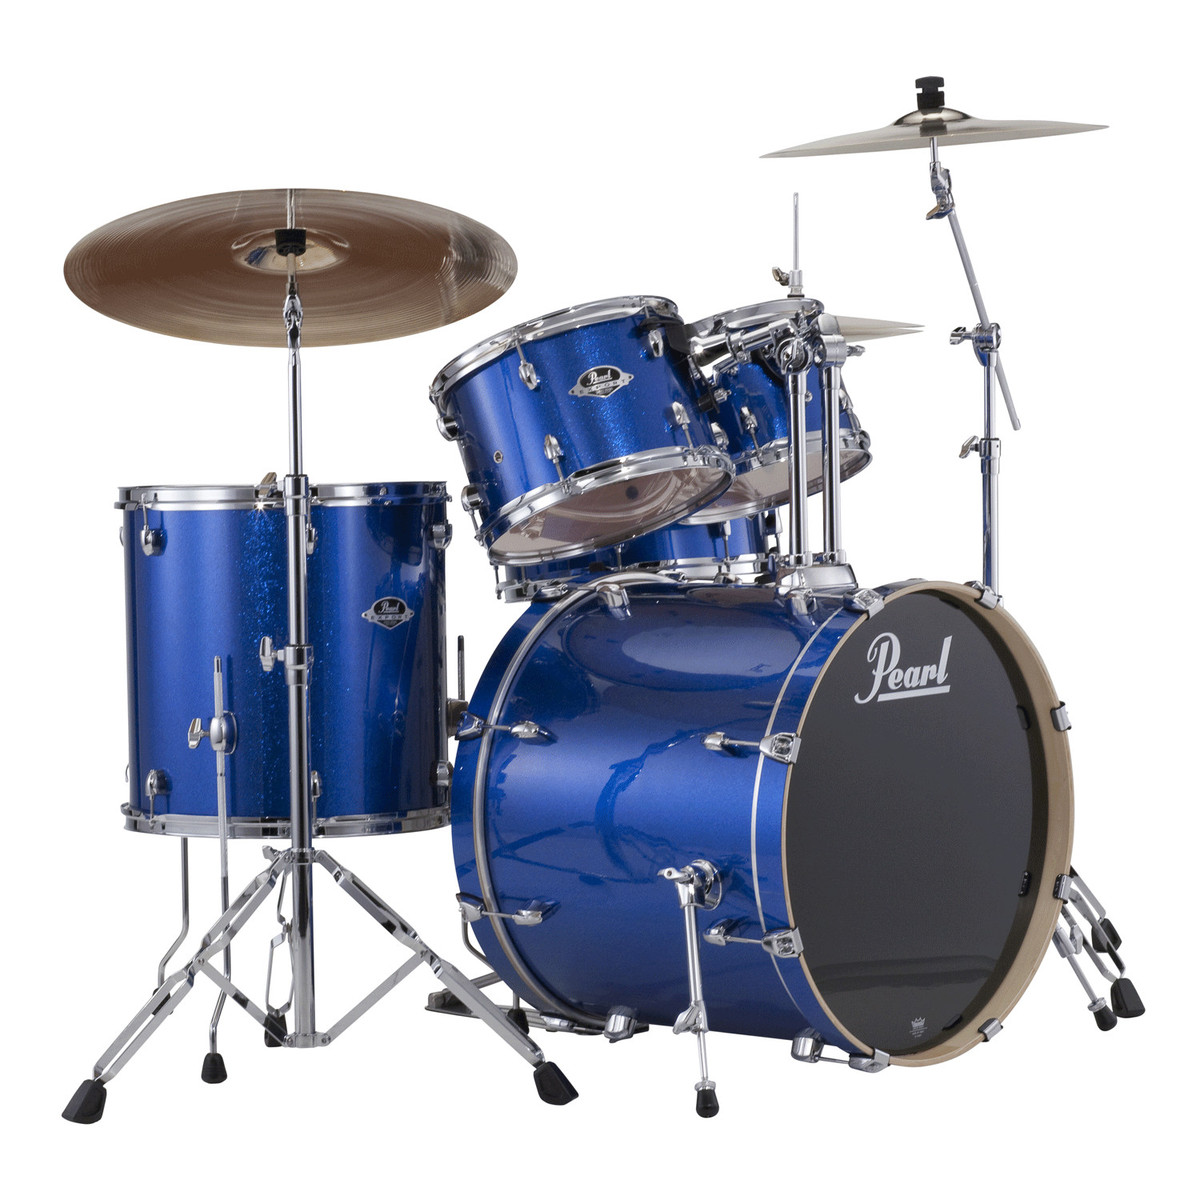 Pearl Export Exx 22 Rock Drum Kit Blue Sparkle At